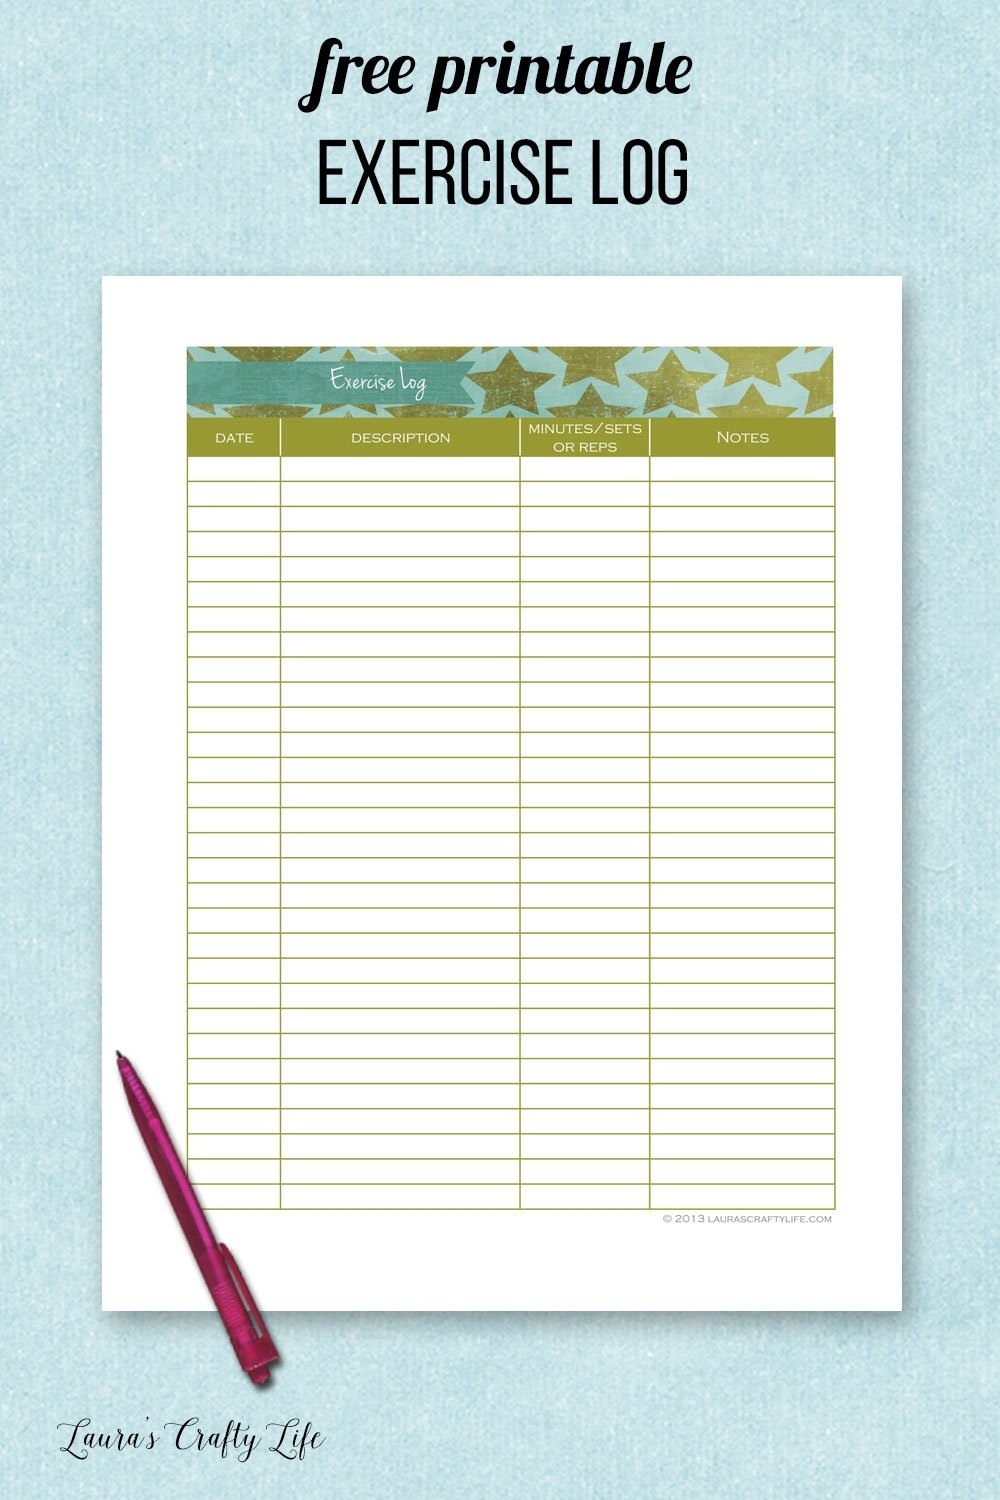 Free printable exercise log. Track the date, exercise, minutes or reps, and notes. #laurascraftylife #freeprintable #excerciselog #getfit